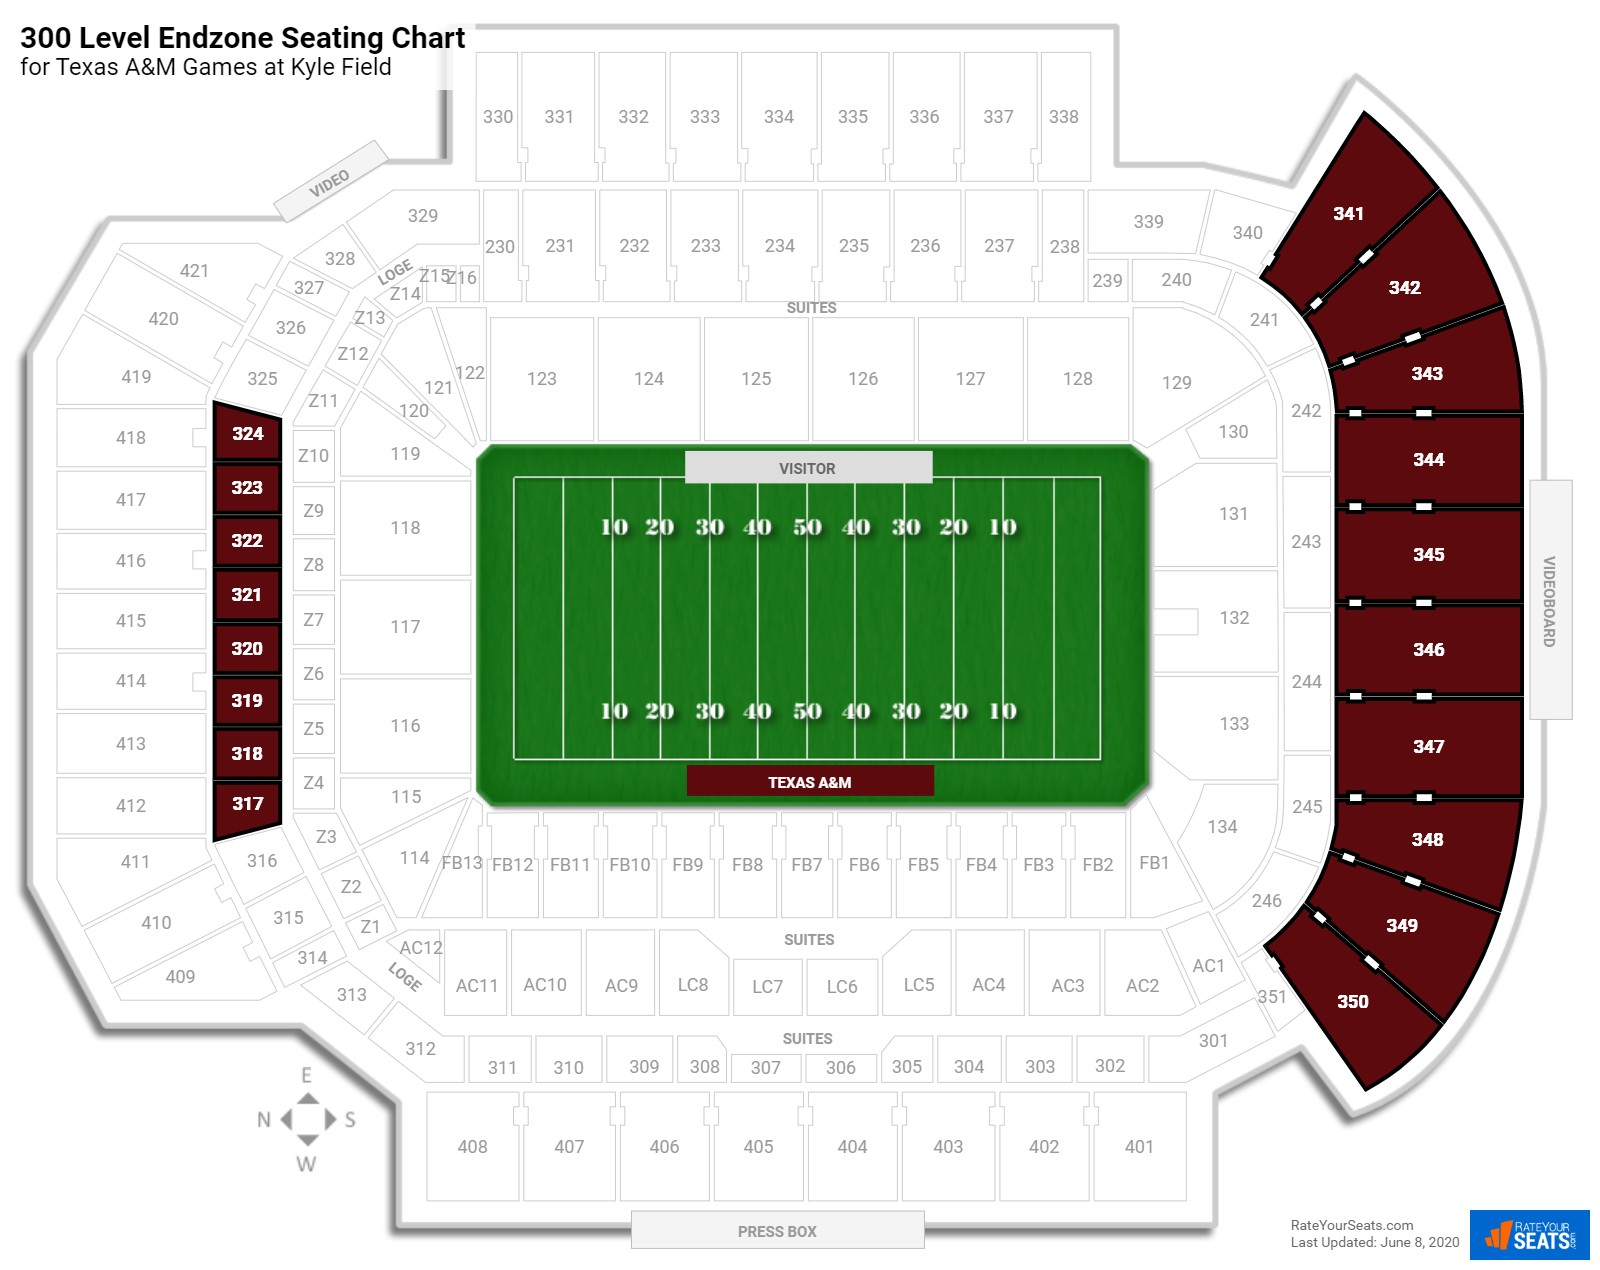 Kyle Field 300 Level Endzone seating chart